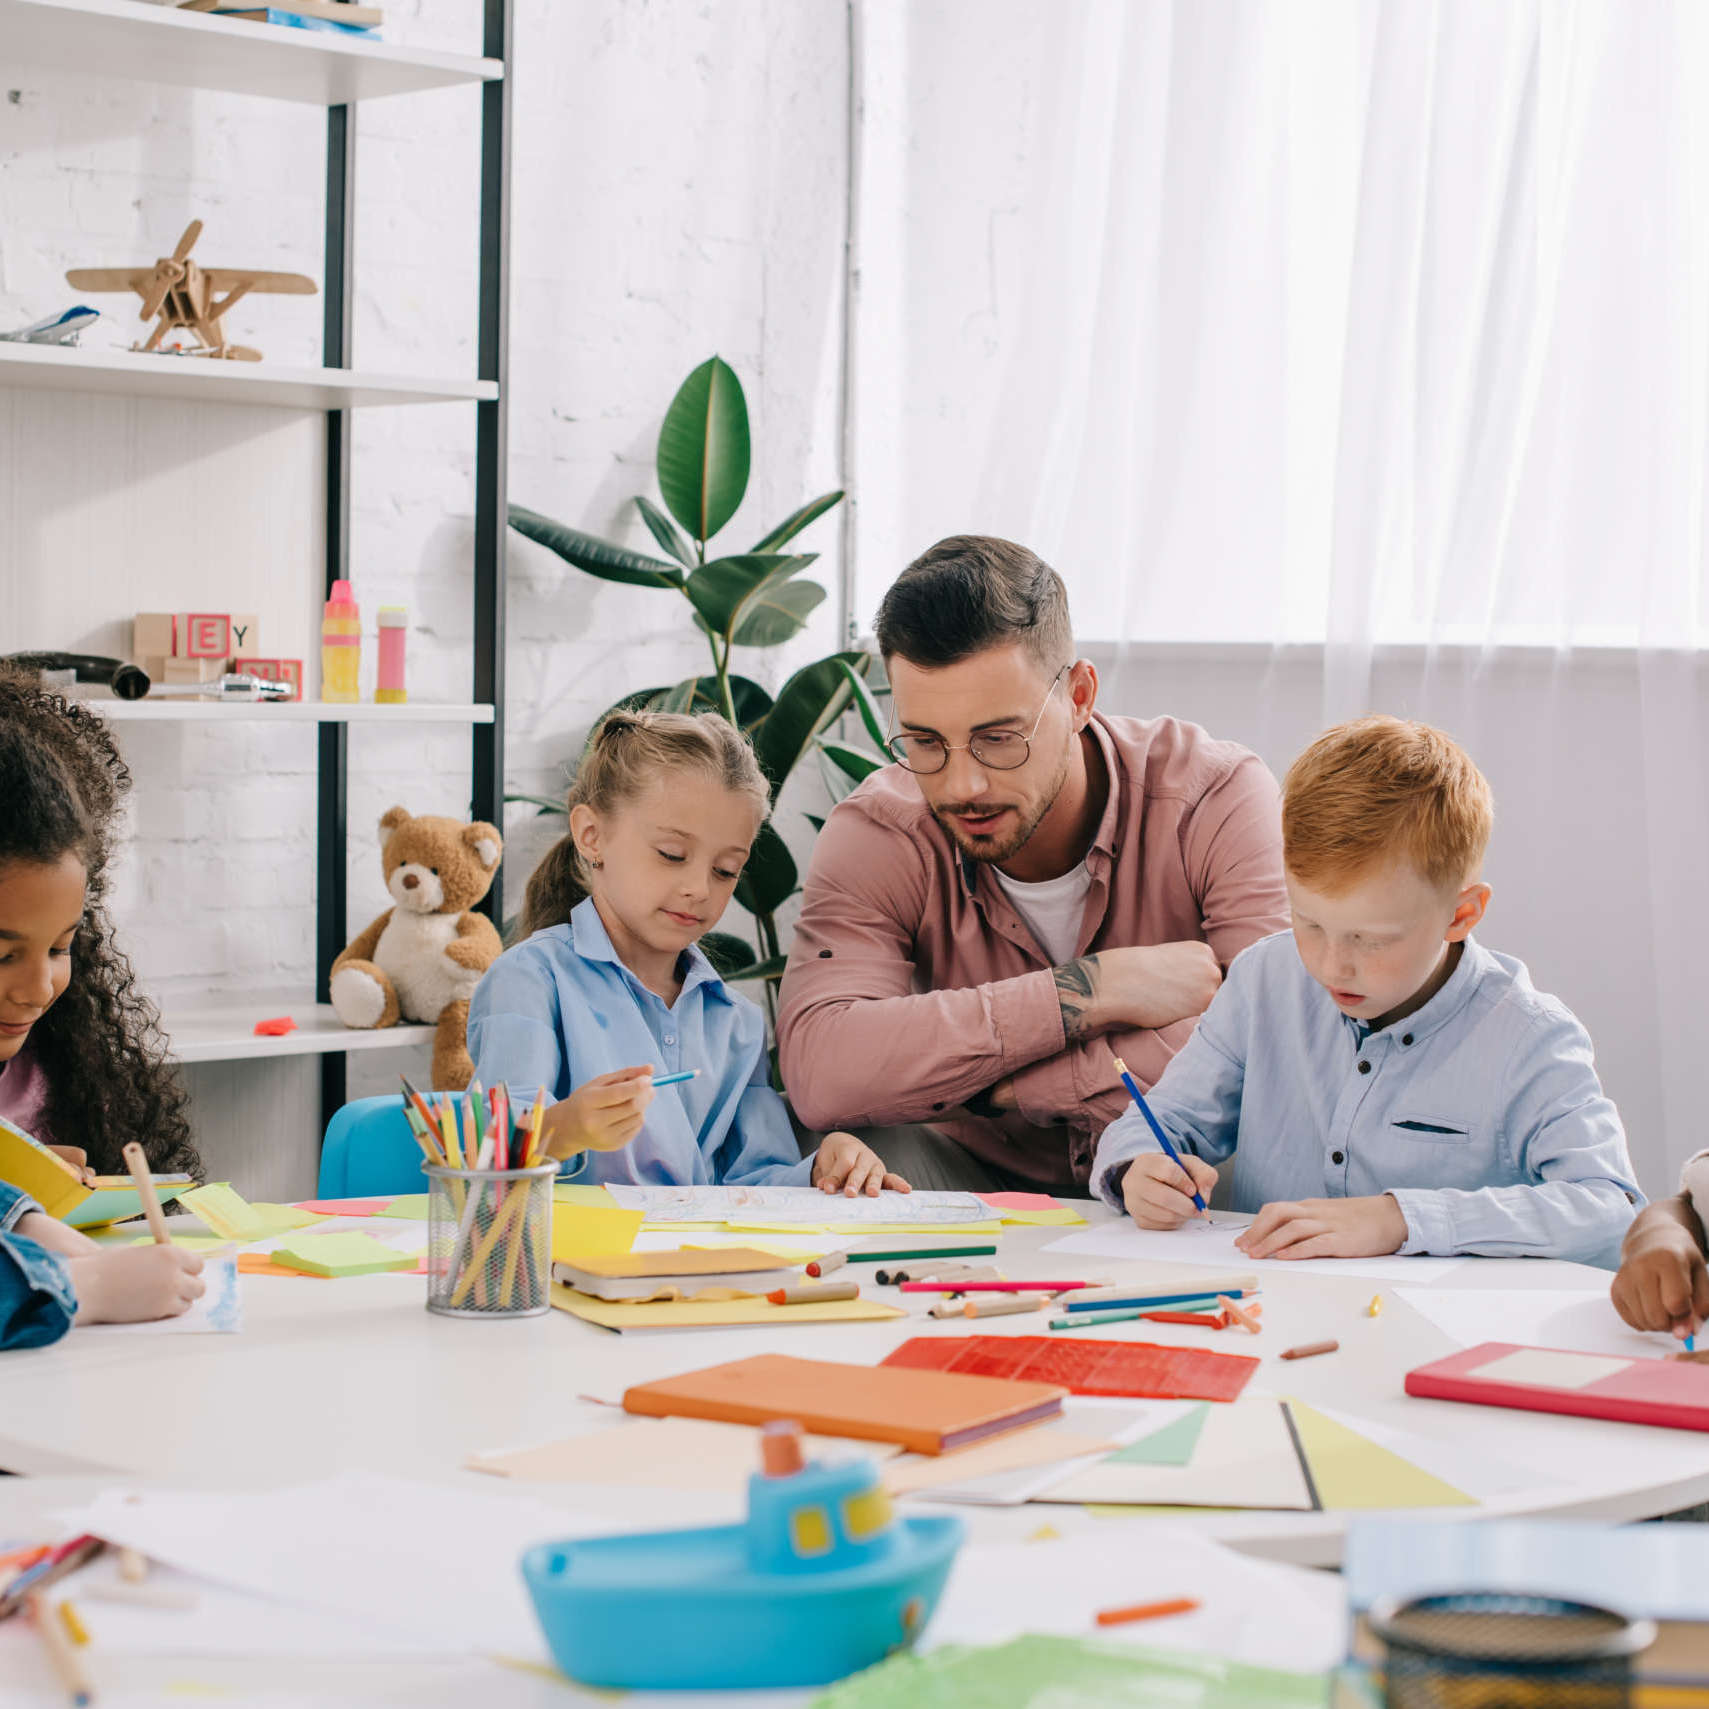 Teacher,And,Interracial,Preschoolers,At,Table,With,Paints,And,Papers